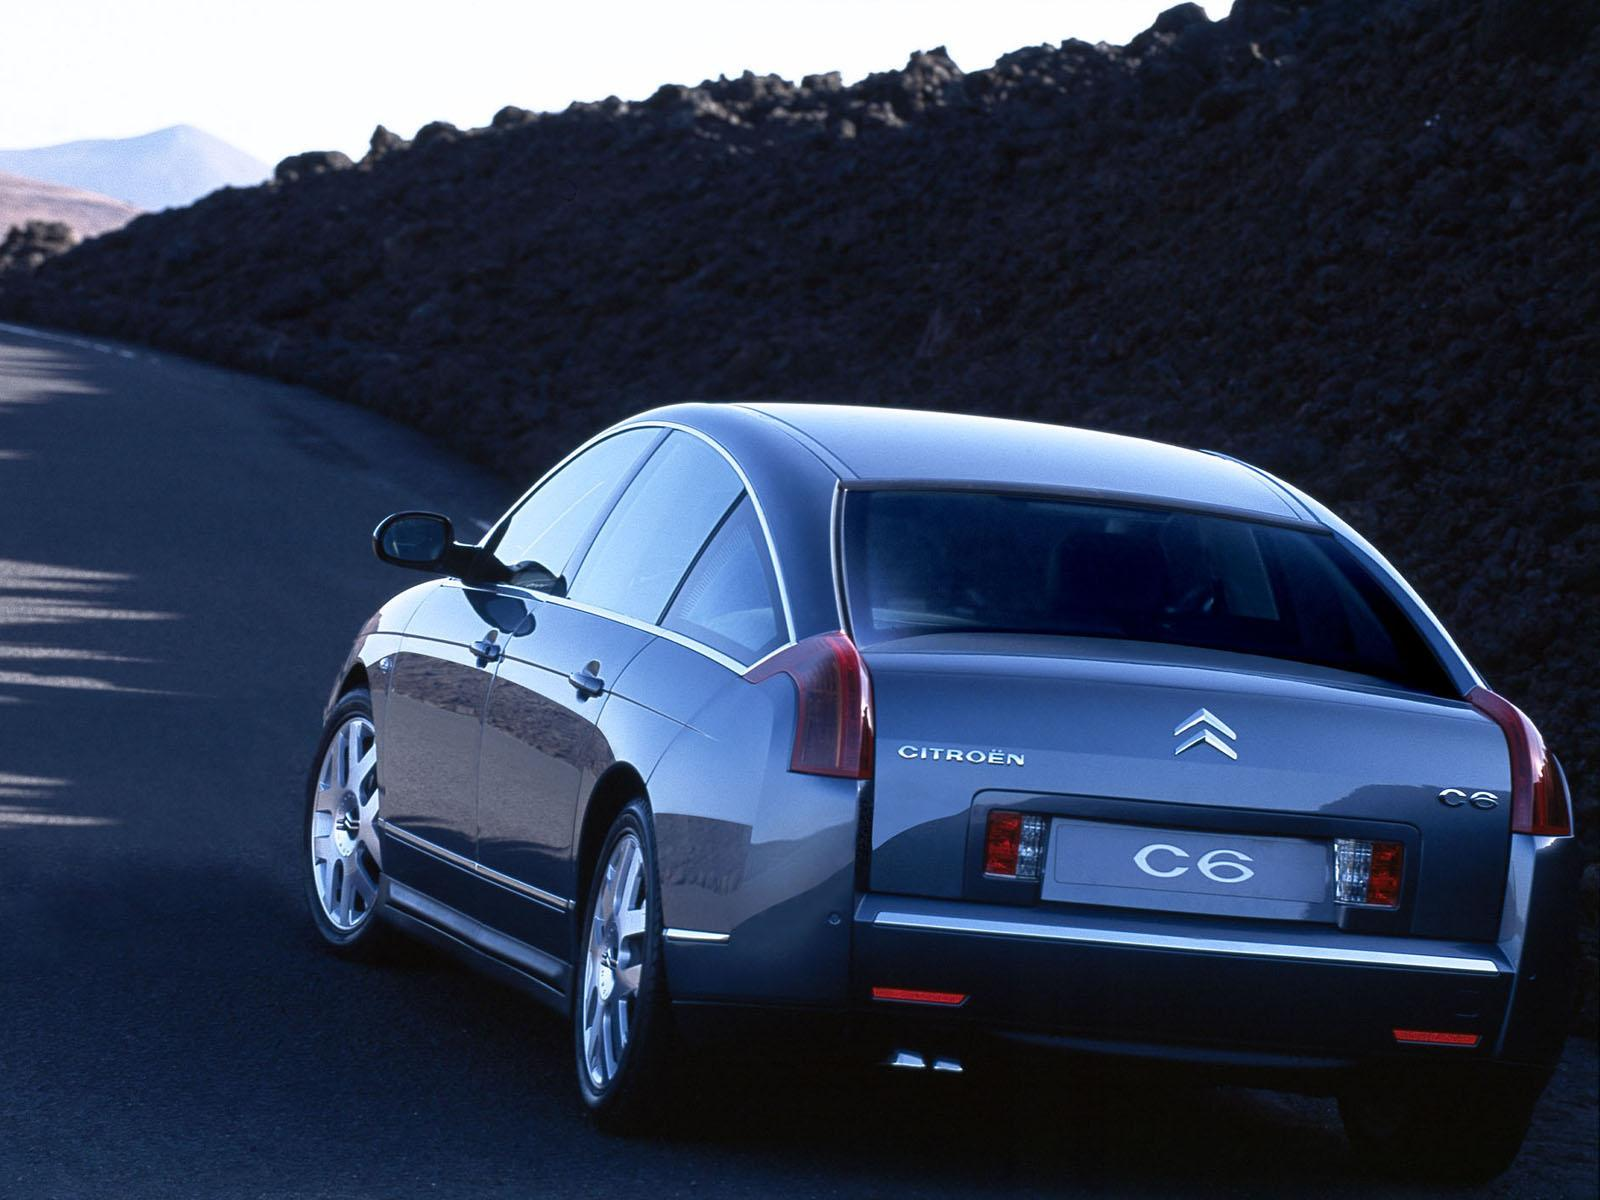 C6 V6 HDi Exclusive 2005